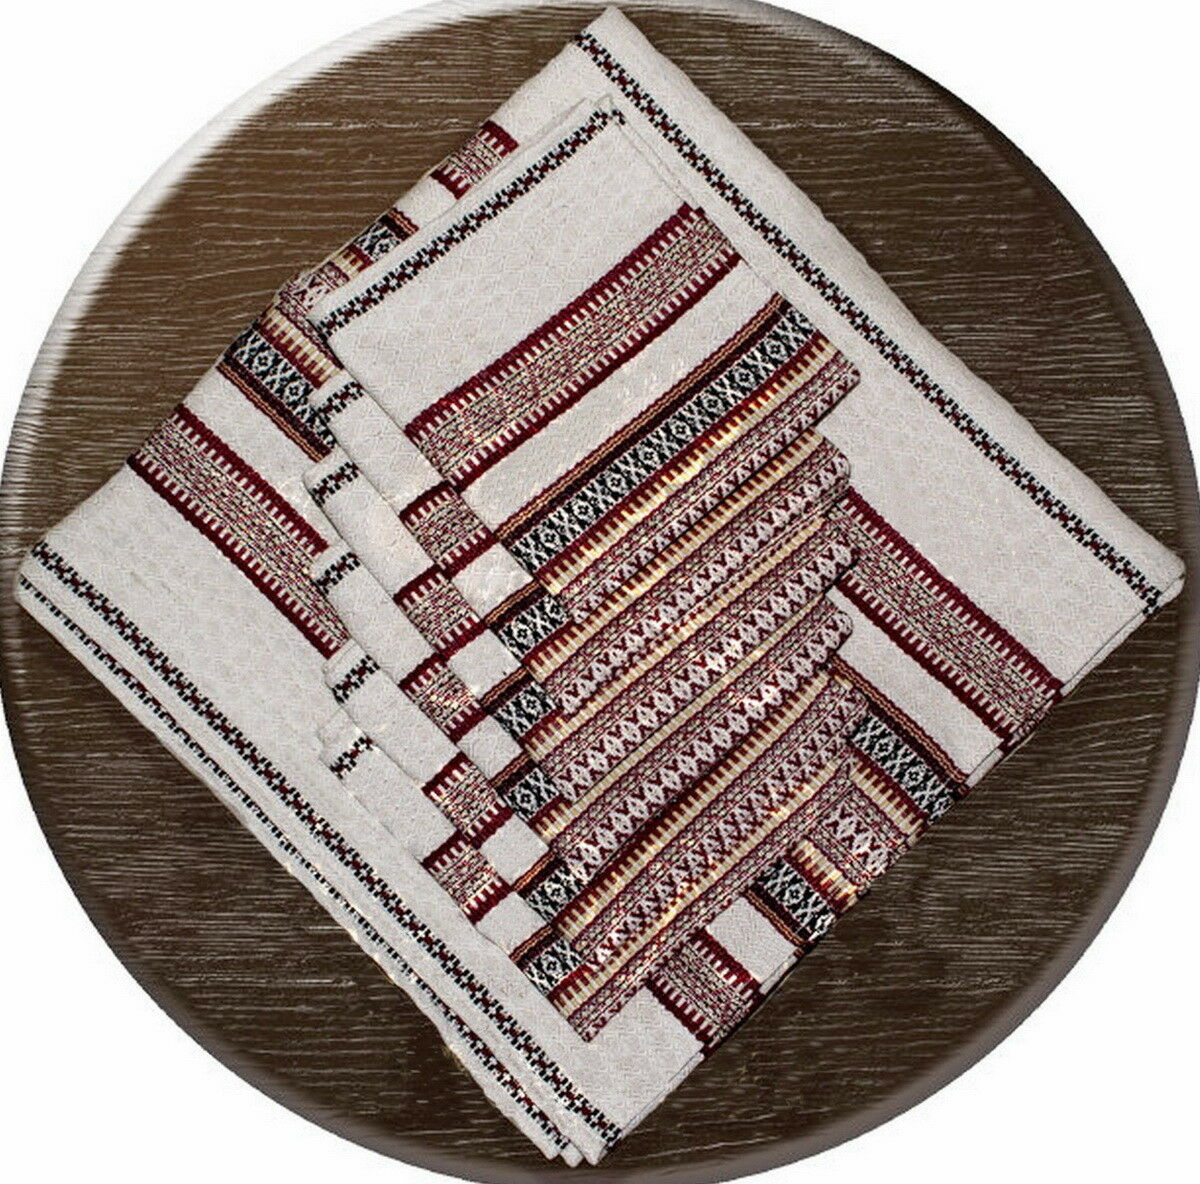 Ukrainian TABLECLOTH + 6 NAPKINS Woven Embroidery DIFFERENT GrößeS  Mother's Day